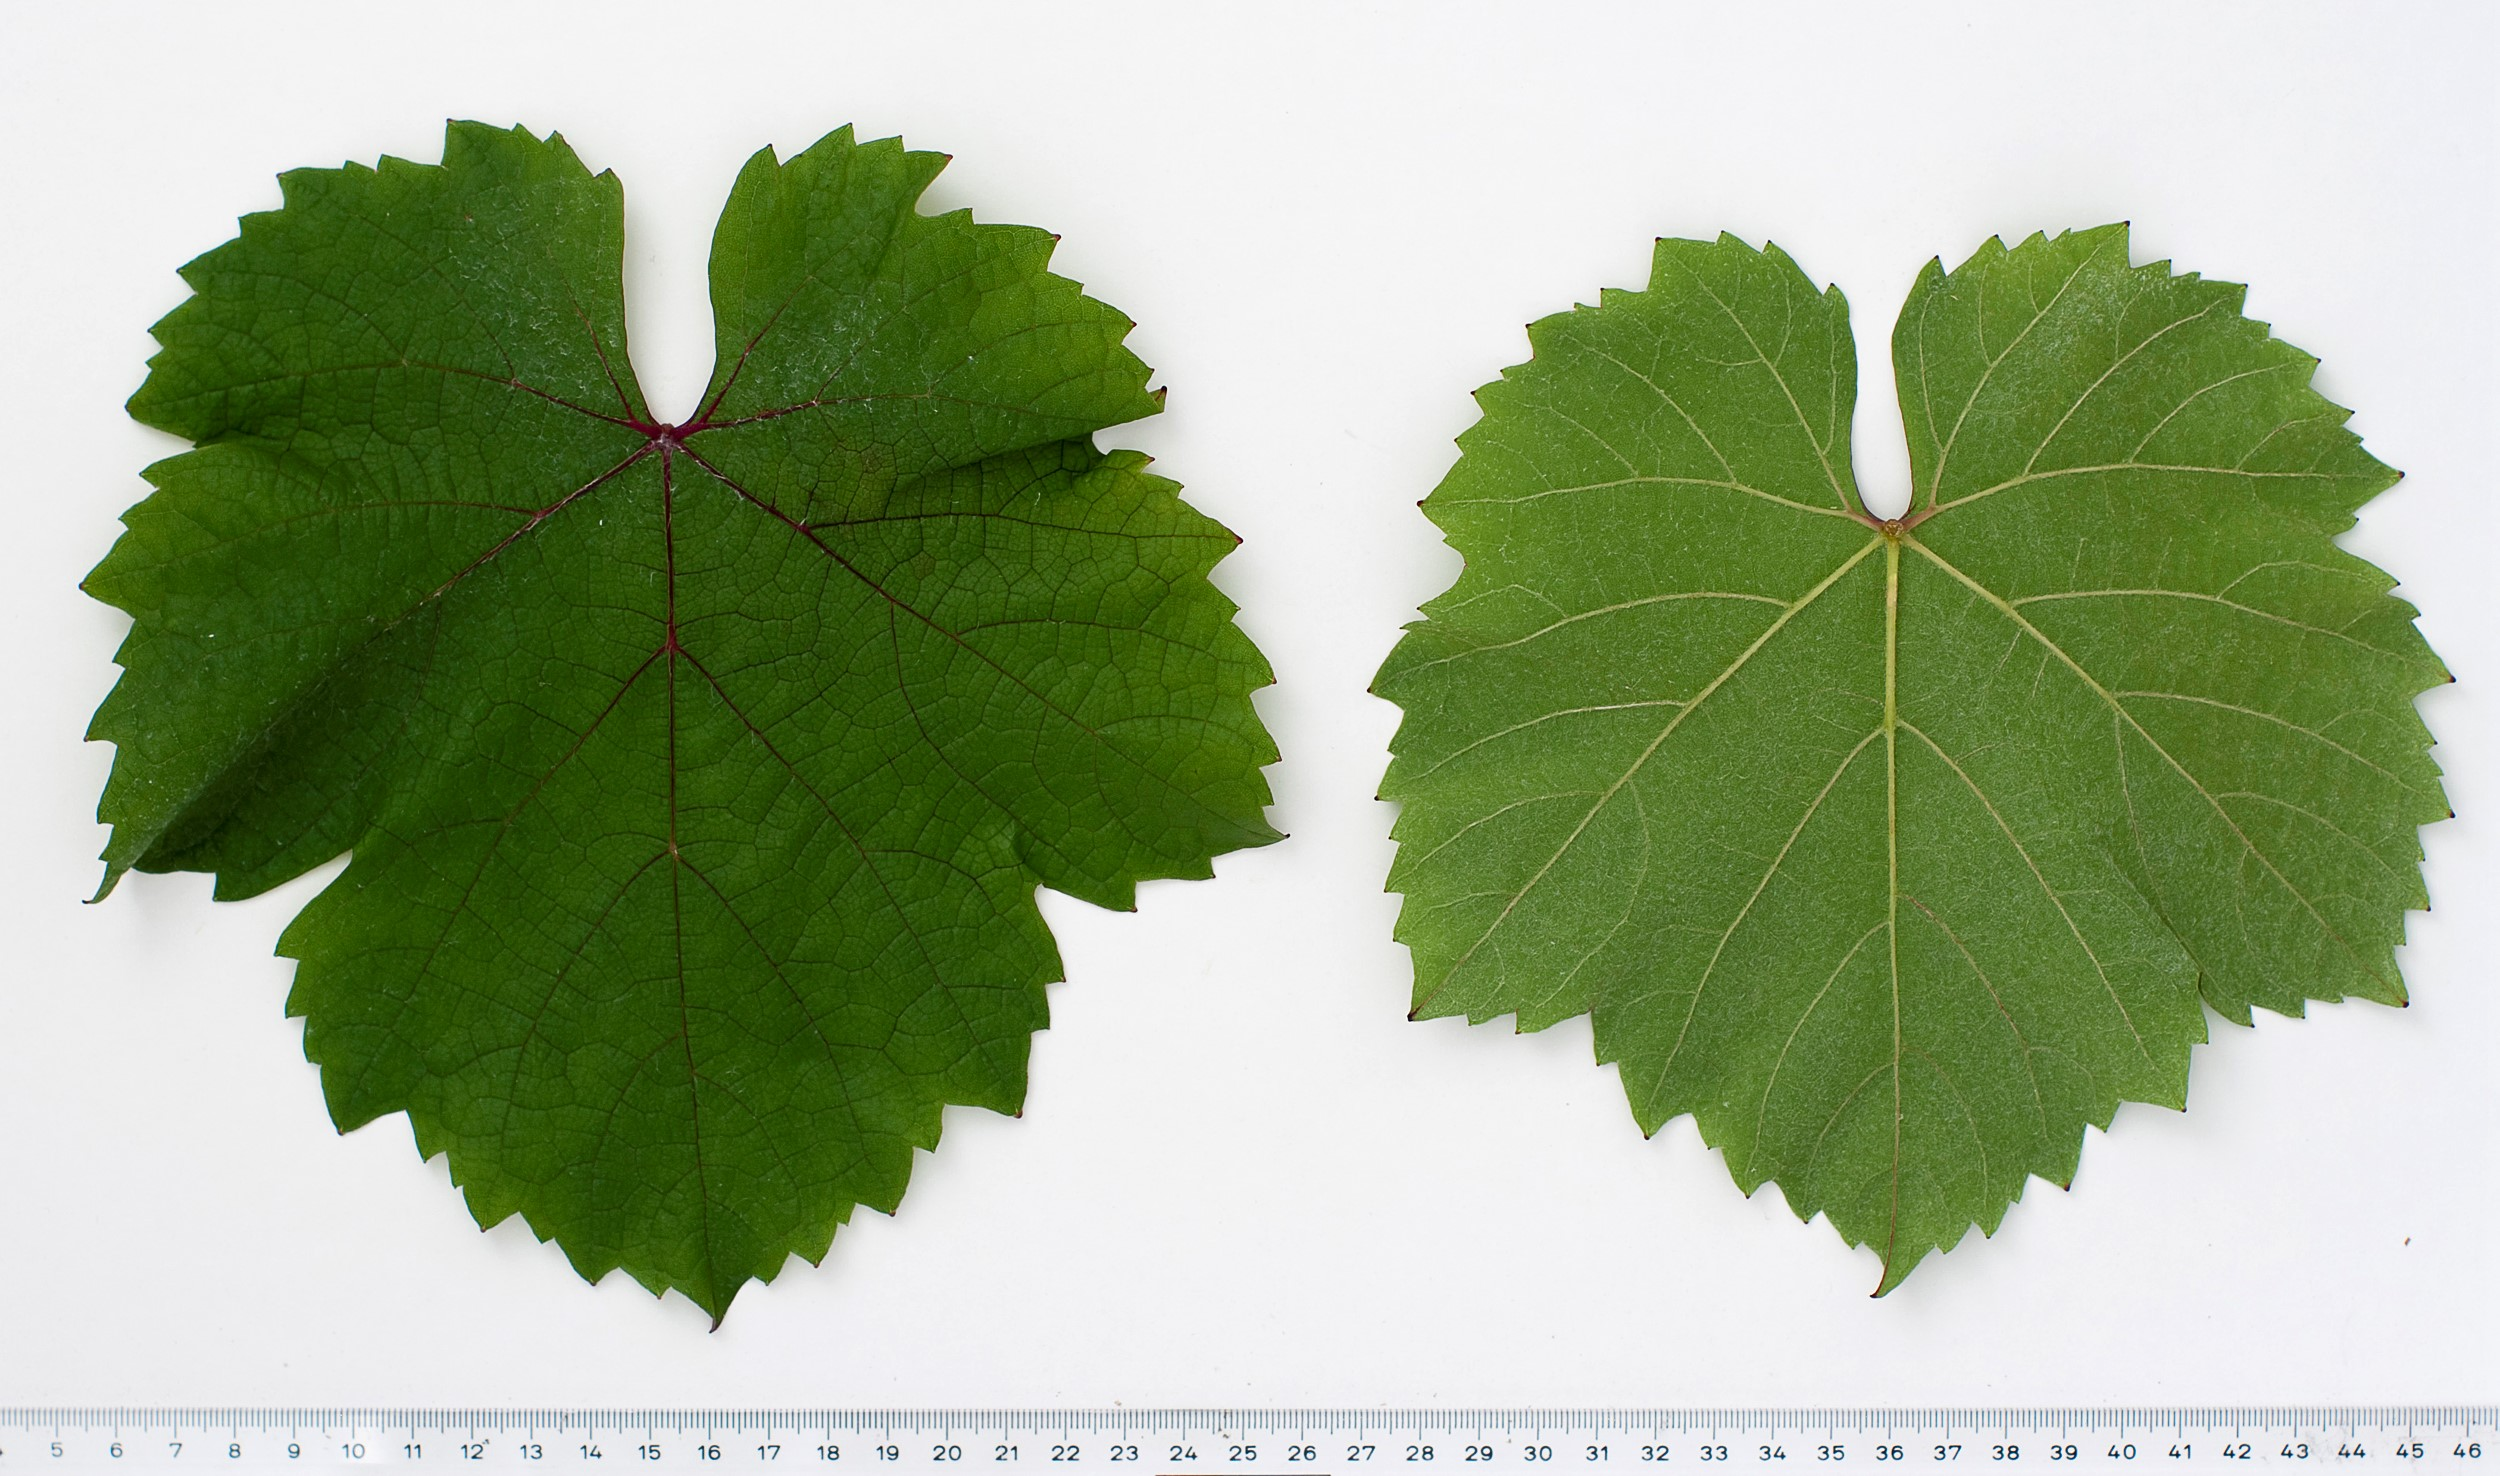 VIVC15499 CABERNET MITOS Mature leaf 10113